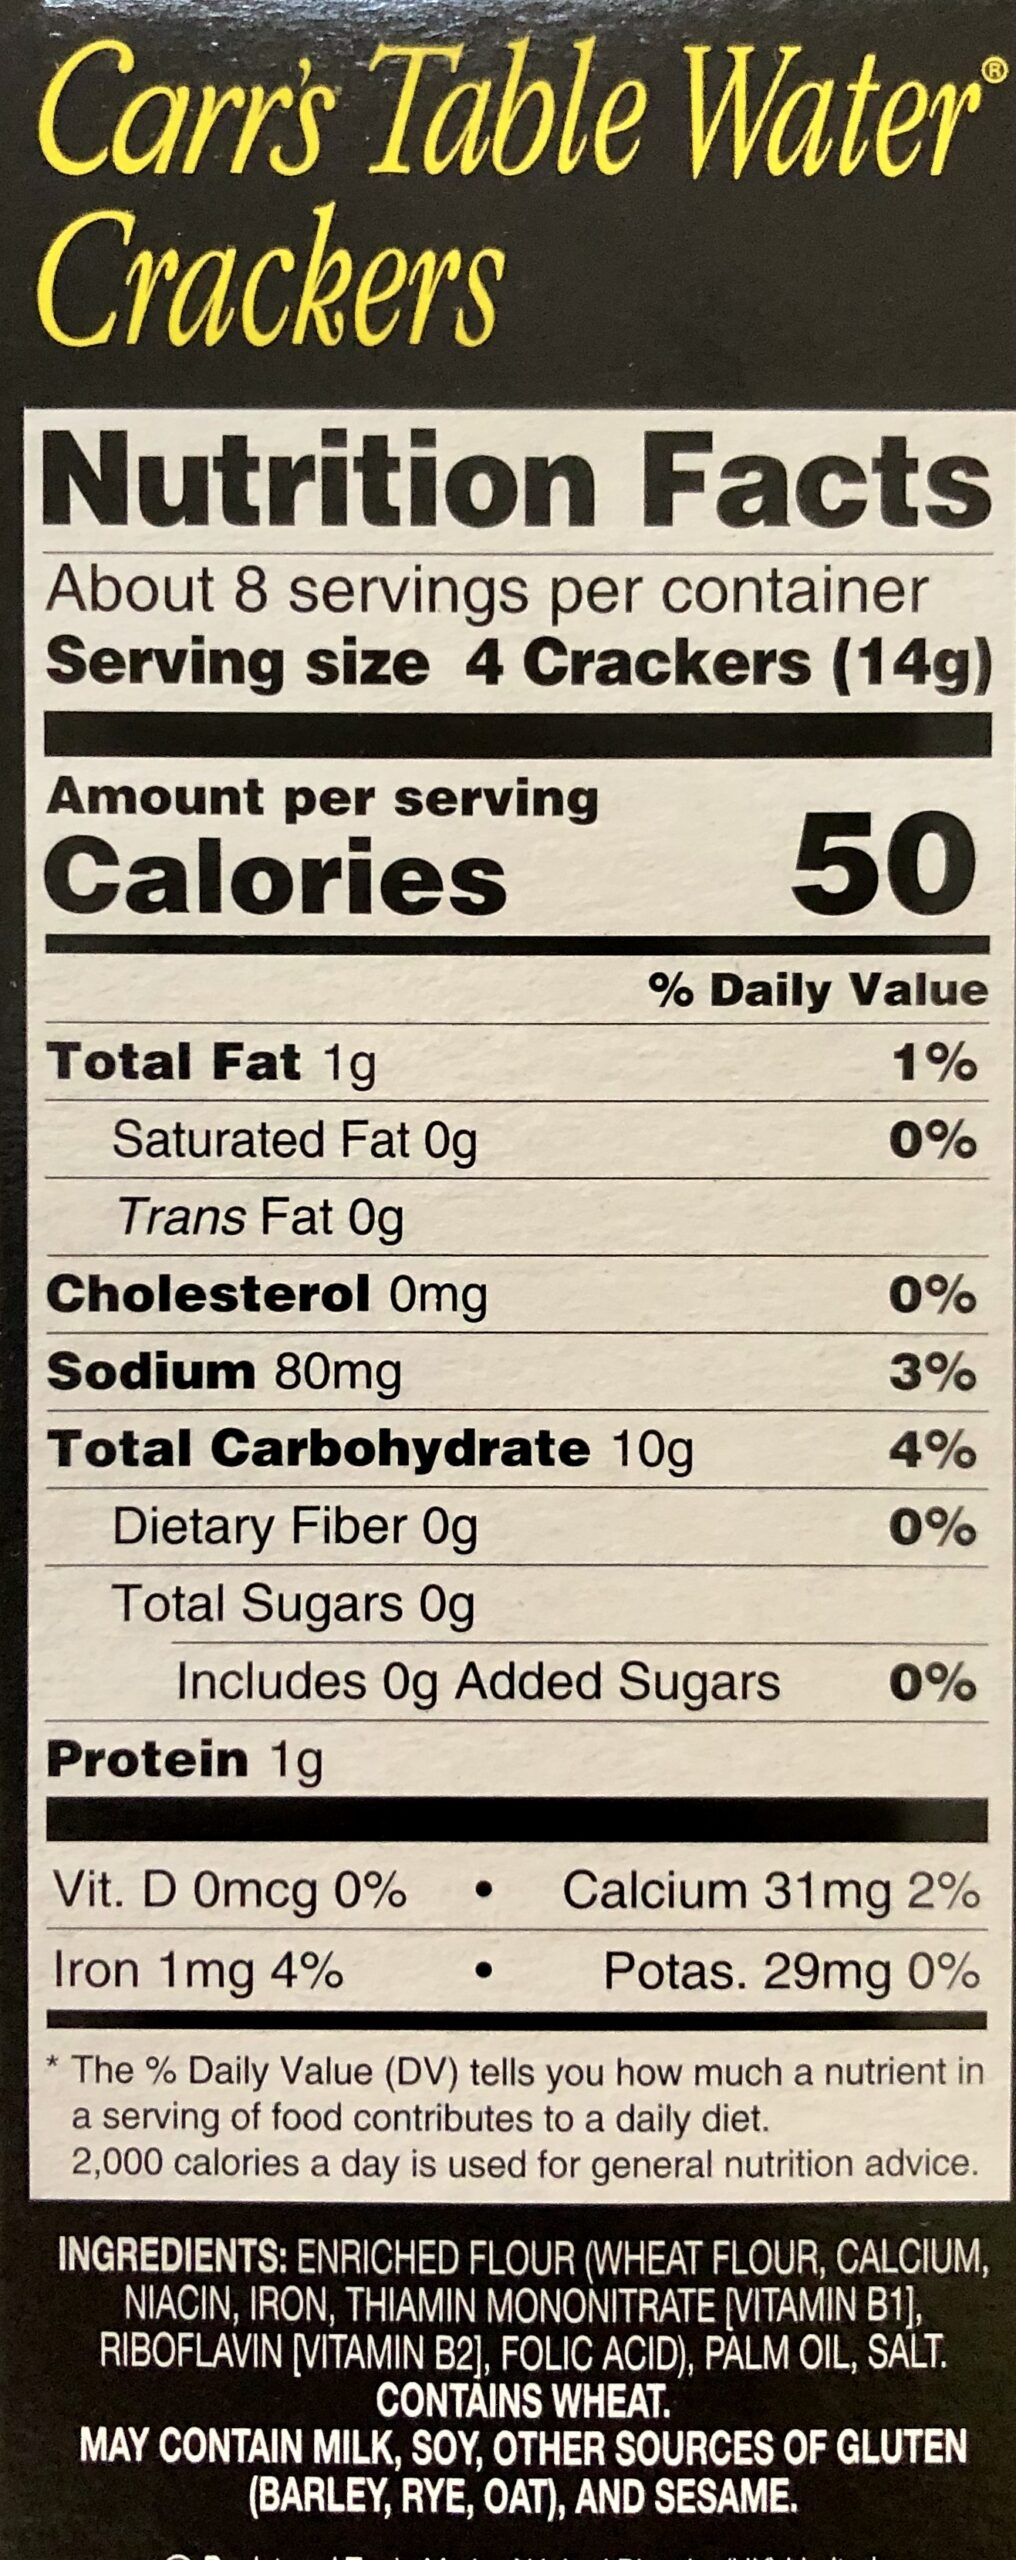 weight, calories, fat content of the Carr's Table Water Crackers or biscuits